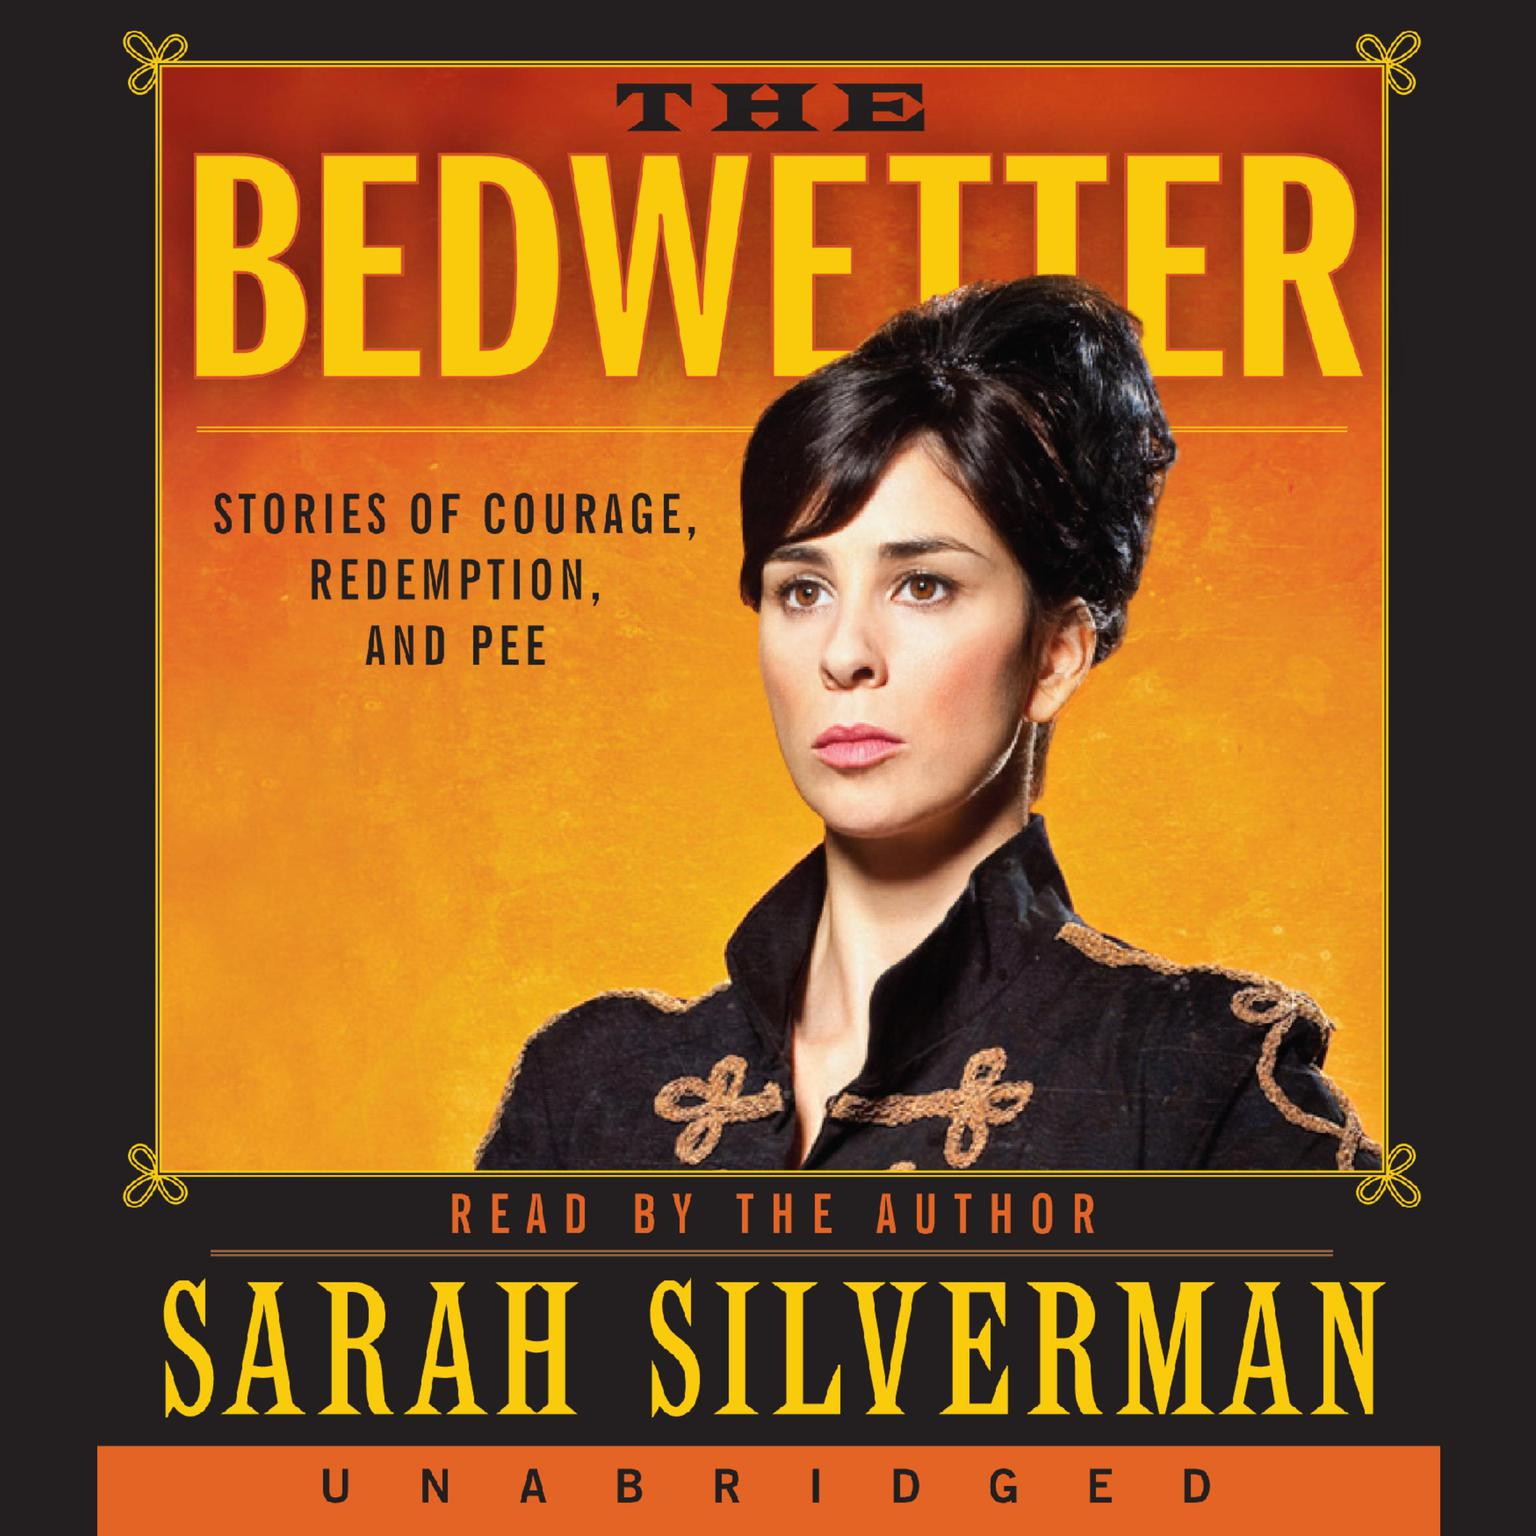 Printable The Bedwetter: Stories of Courage, Redemption, and Pee Audiobook Cover Art